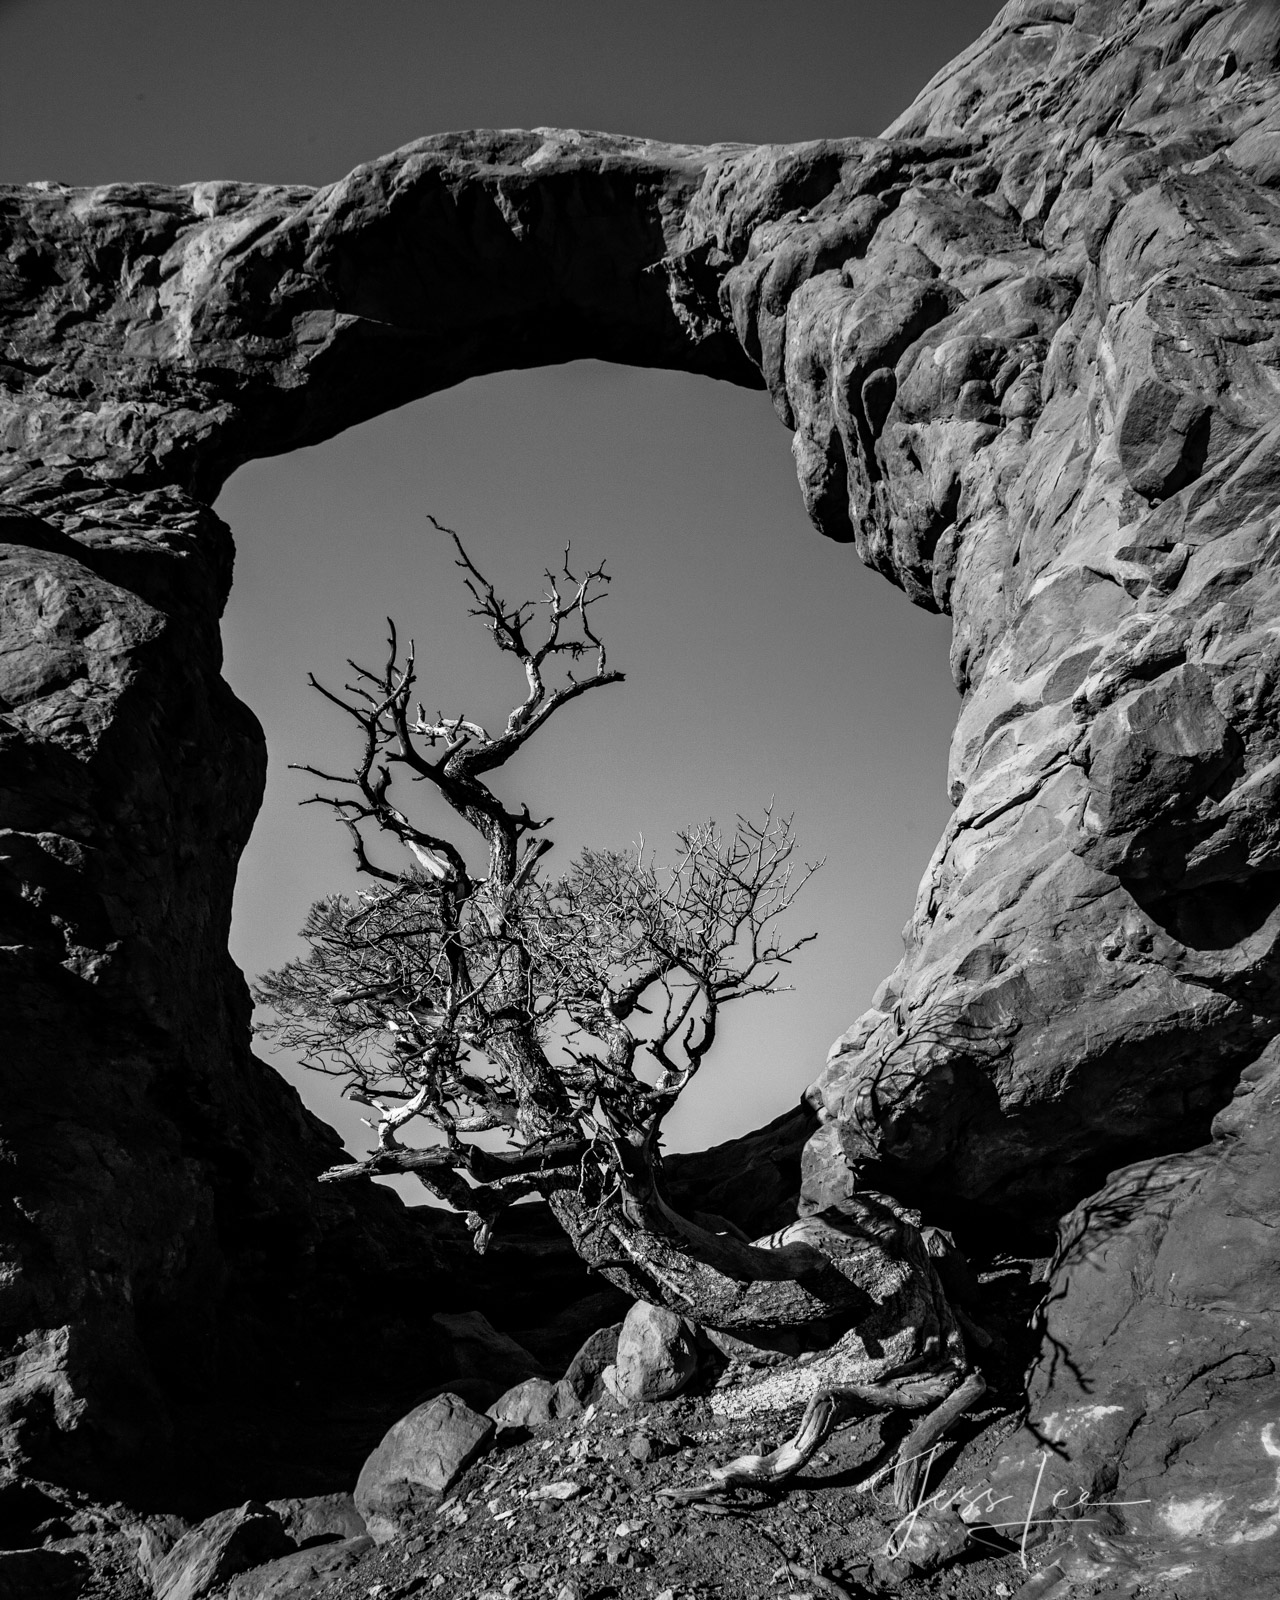 FINE ART LIMITED EDITION BLACK AND WHITE PHOTOGRAPHIC PRINT OF ARCHES NATIONAL PARK Arches Landscape photo print of Utah Landscape...